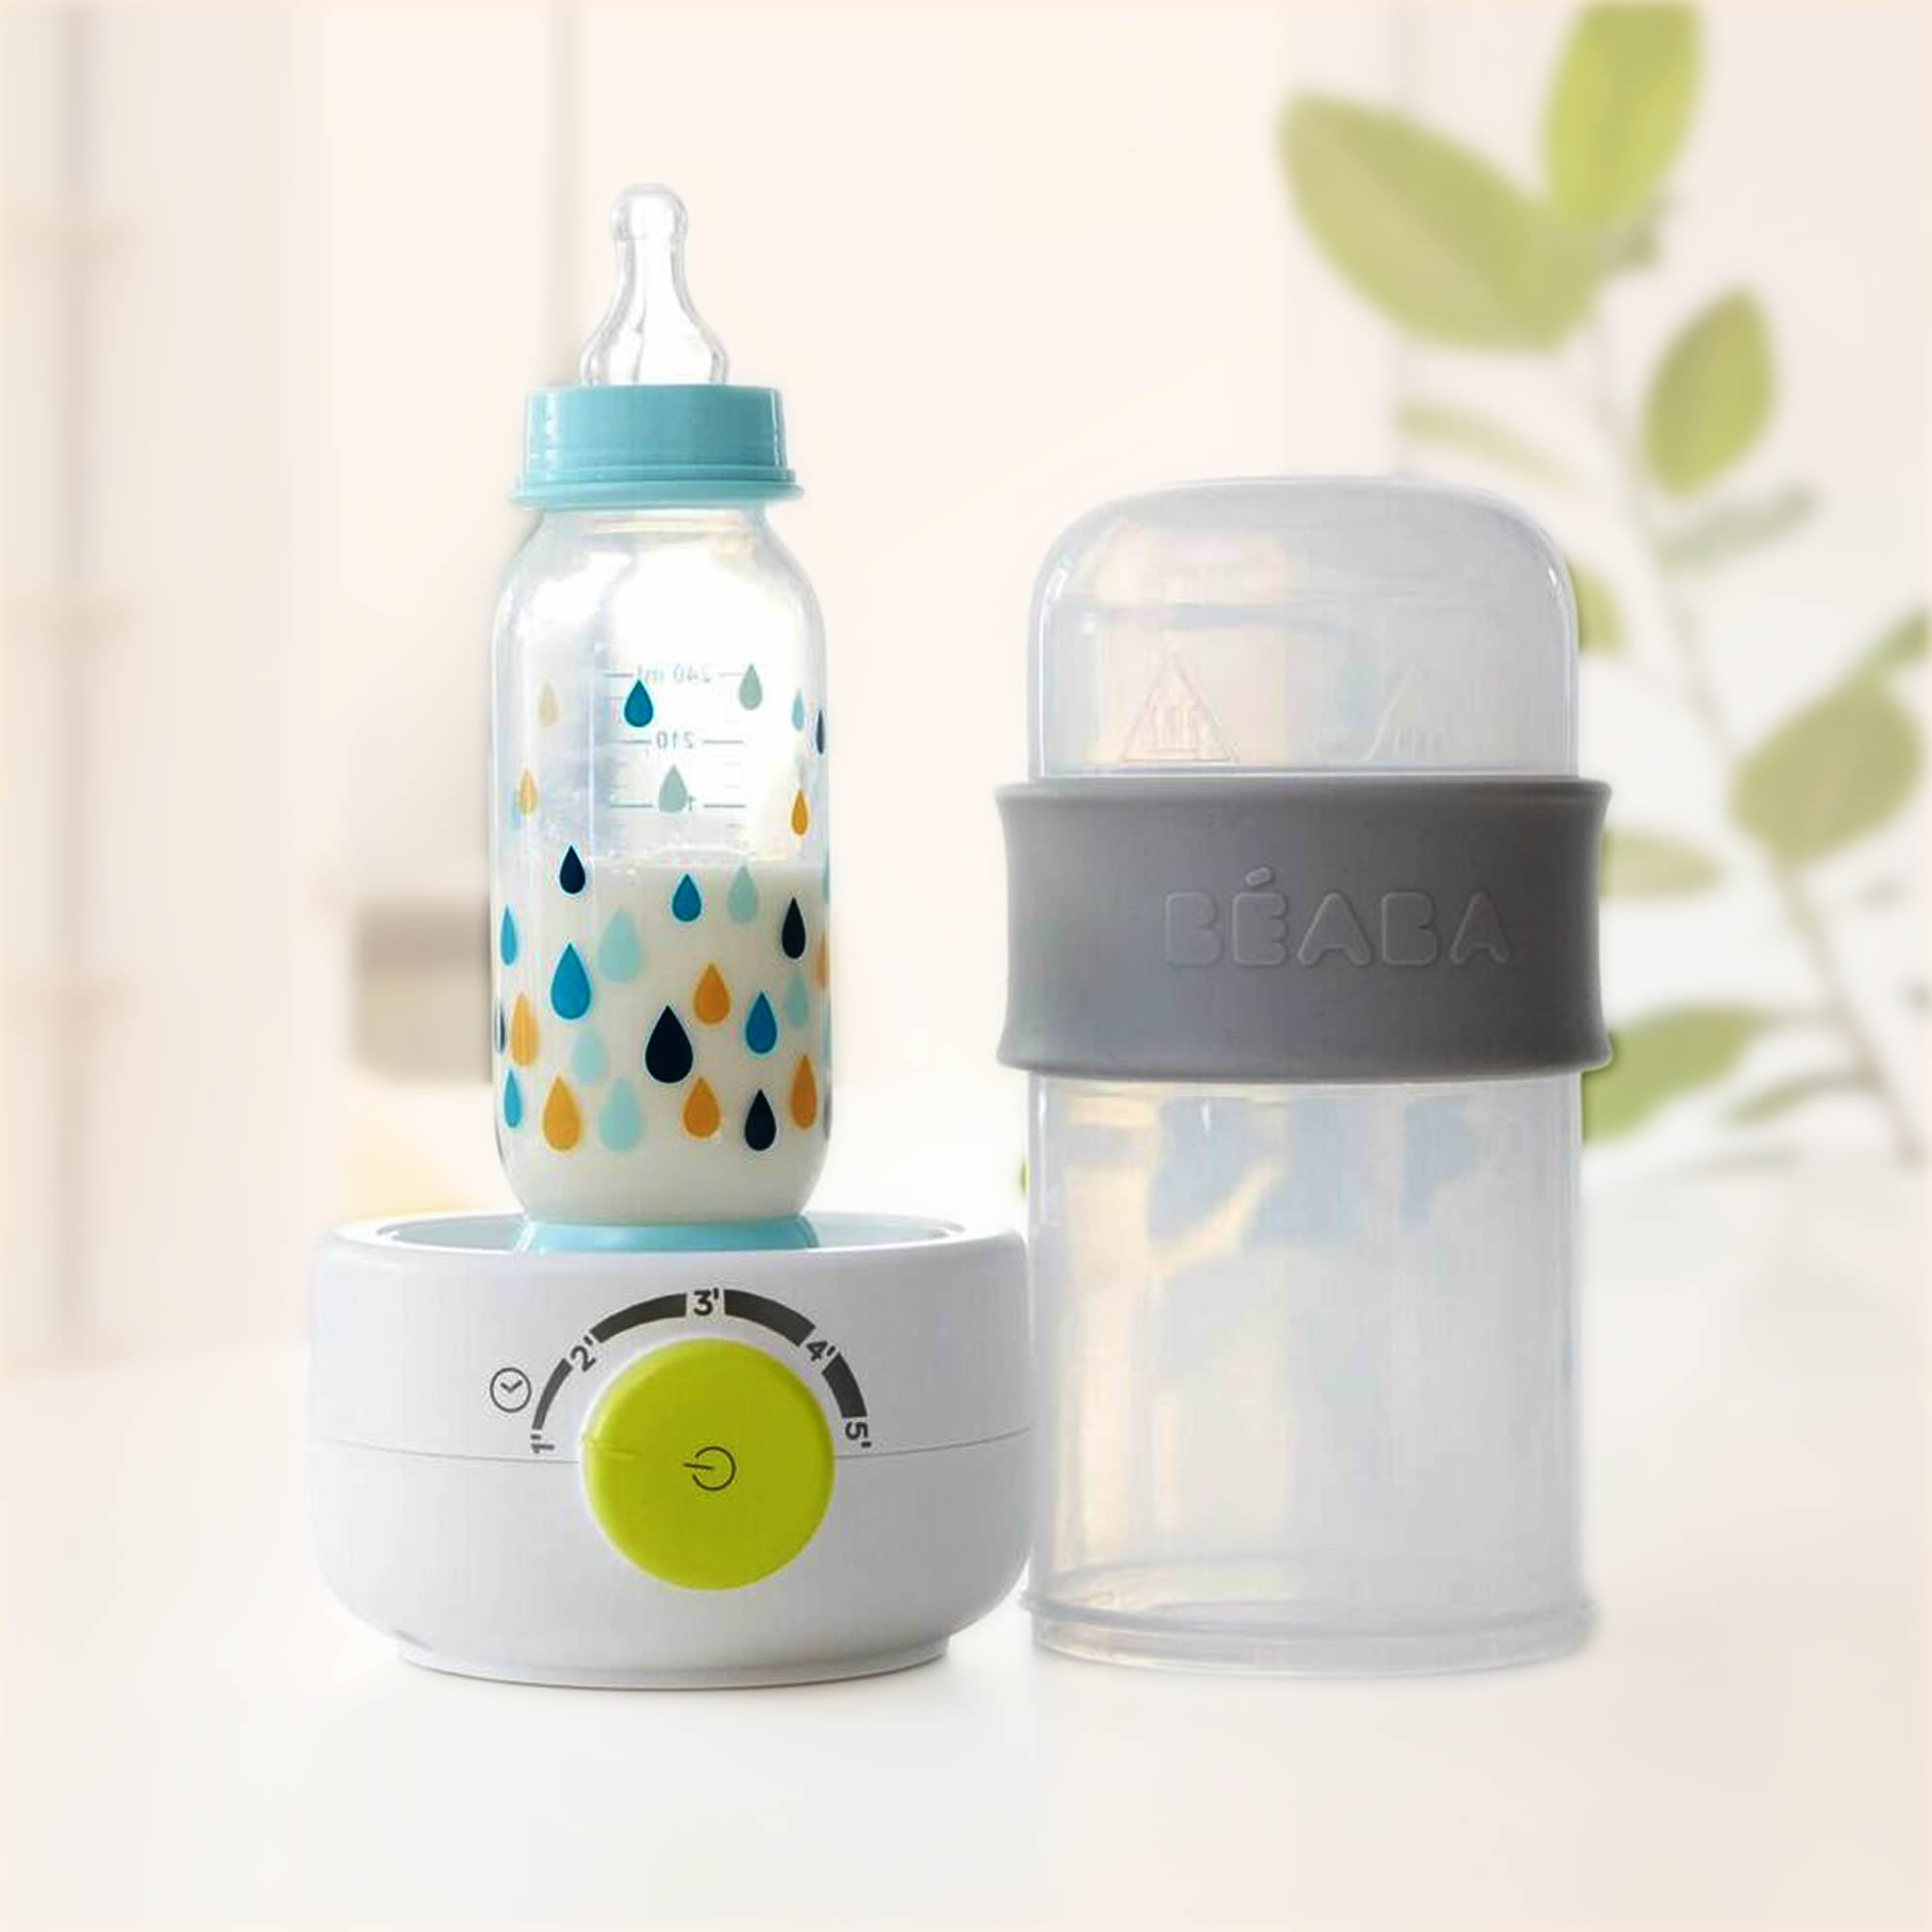 BEABA Quick Baby Bottle Warmer, Steam Sterilizer, Baby Food Heater (3-in-1) Warm Milk in Just Two Minutes, BPA and Lead Free, Simple Temperature Control, Fits All Bottle Sizes - Even Wide Neck, Neon by BEABA (Image #5)